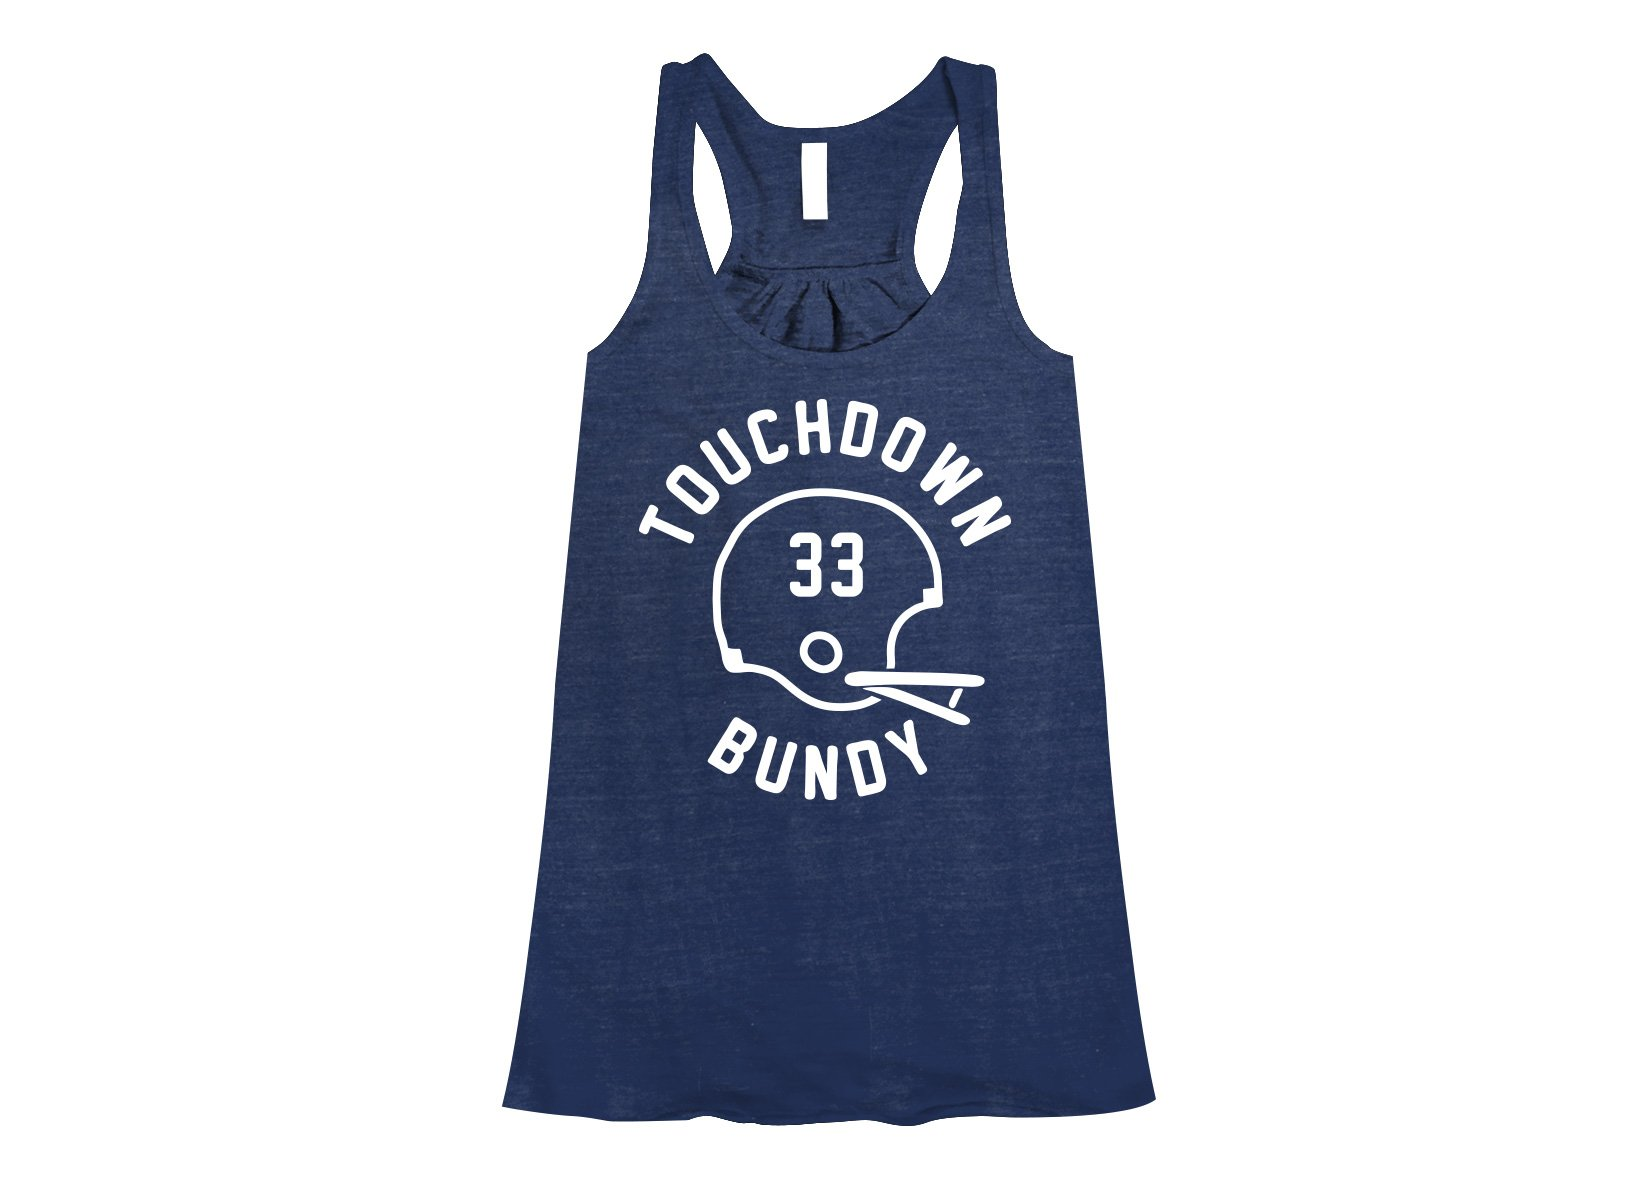 Touchdown Bundy on Womens Tanks T-Shirt